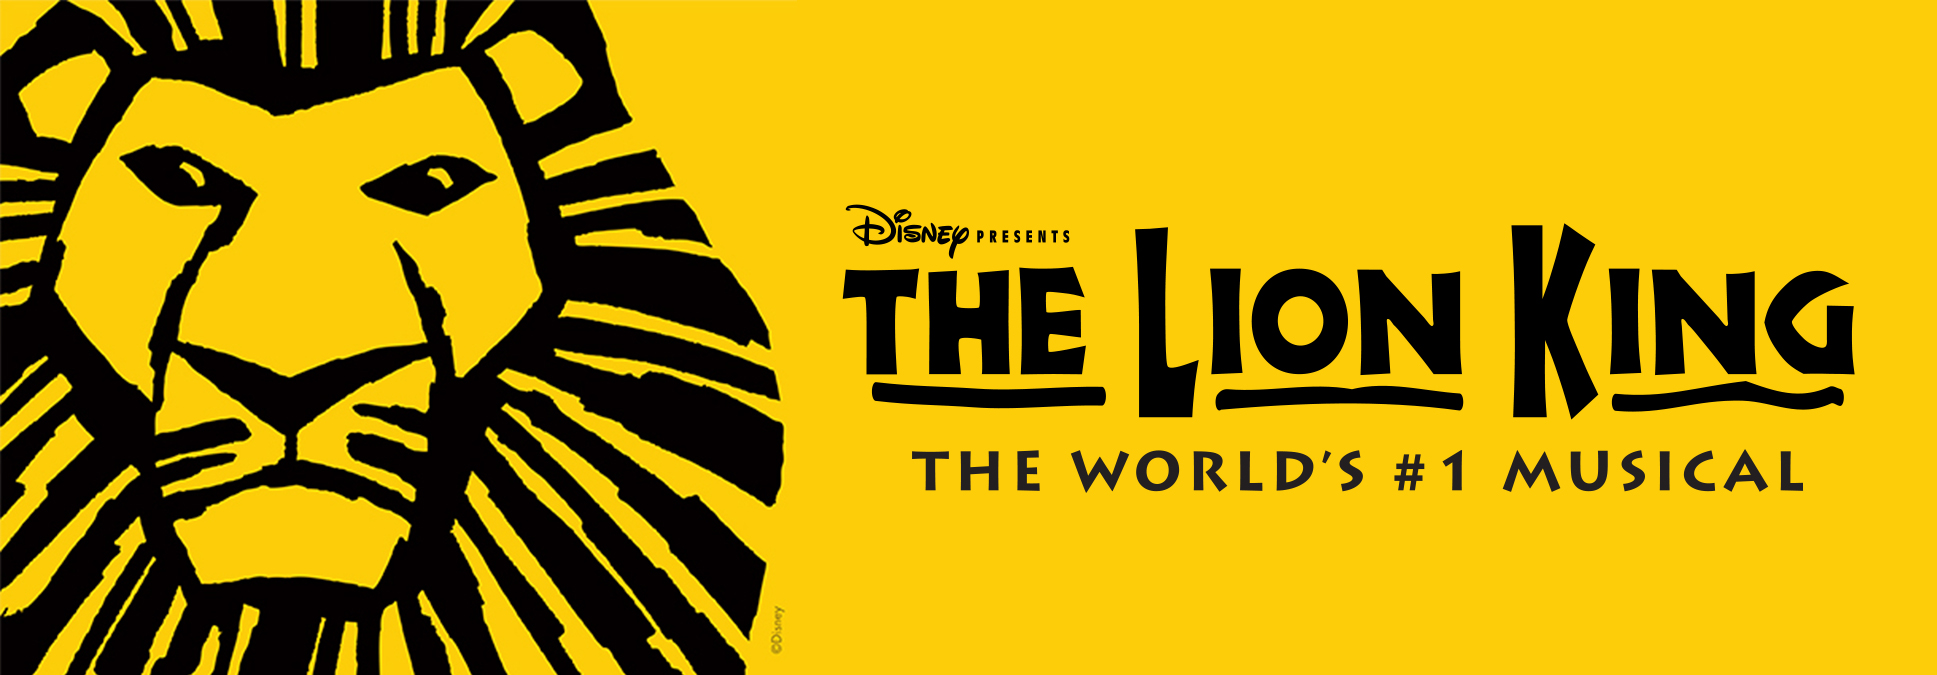 Disney's The Lion King Broadway show at the Marcus Center in Milwaukee,WI